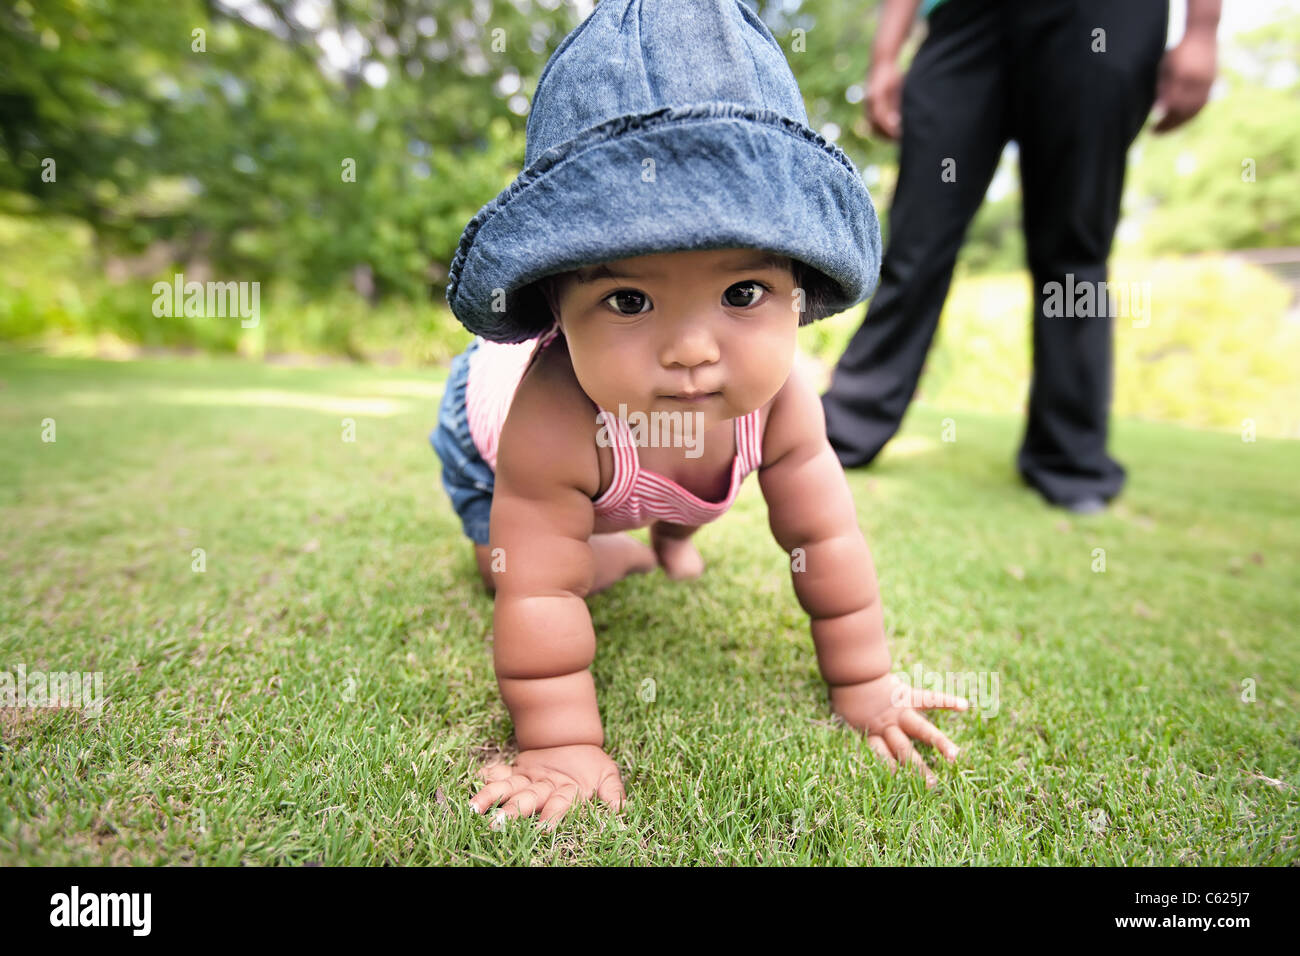 Baby girl crawling on grass, wearing a denim hat, with parent in background observing her chubby arms support her - Stock Image